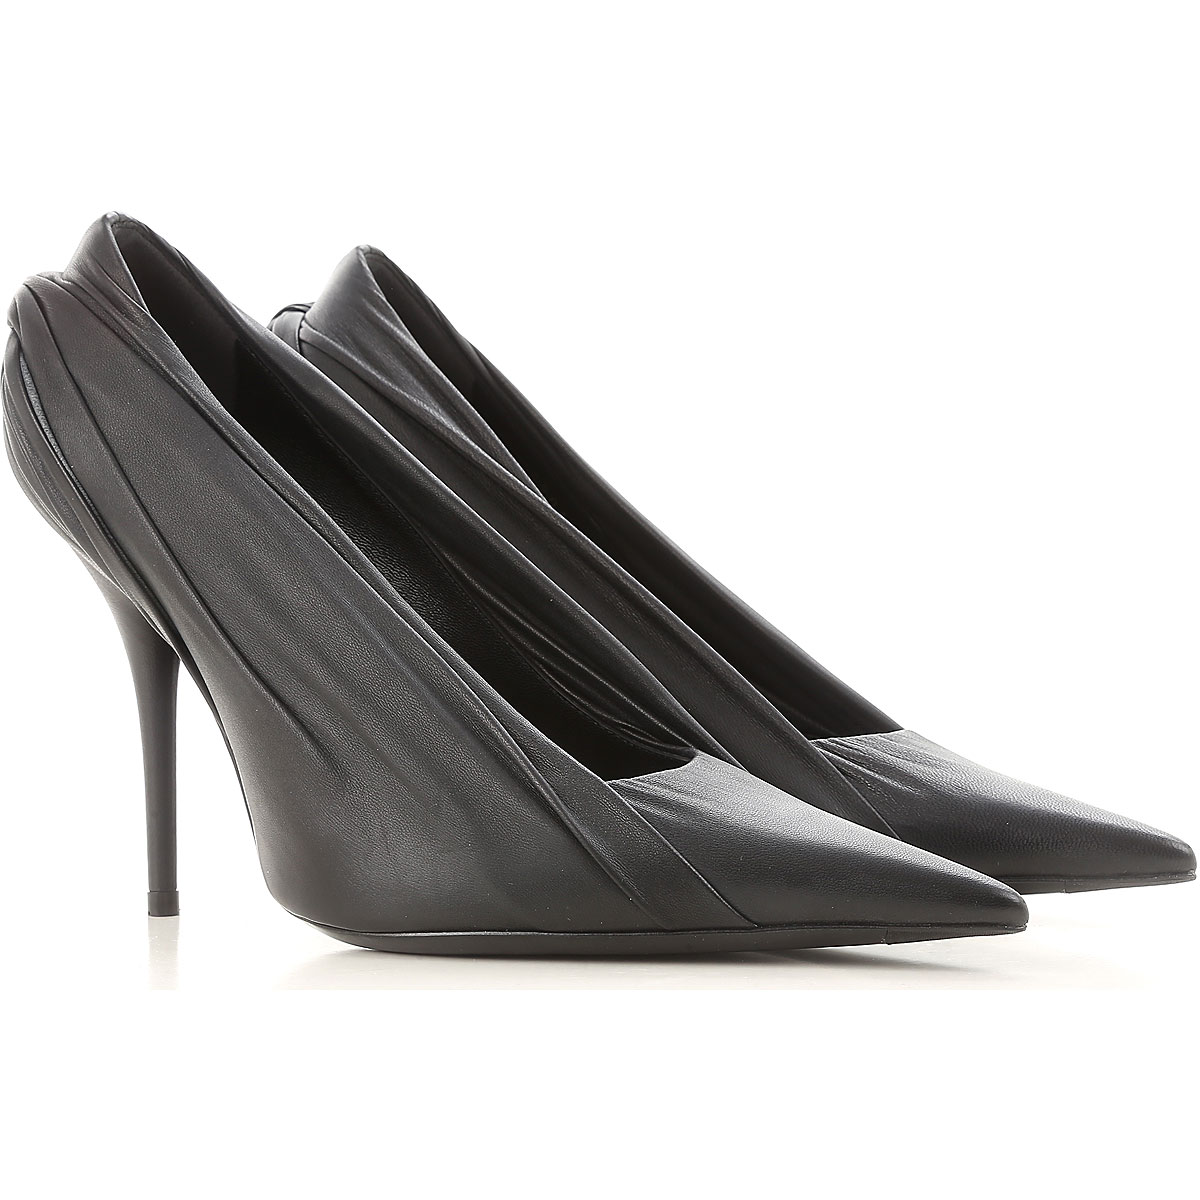 Image of Balenciaga Pumps & High Heels for Women On Sale, Black, Leather, 2017, 5.5 6.5 7